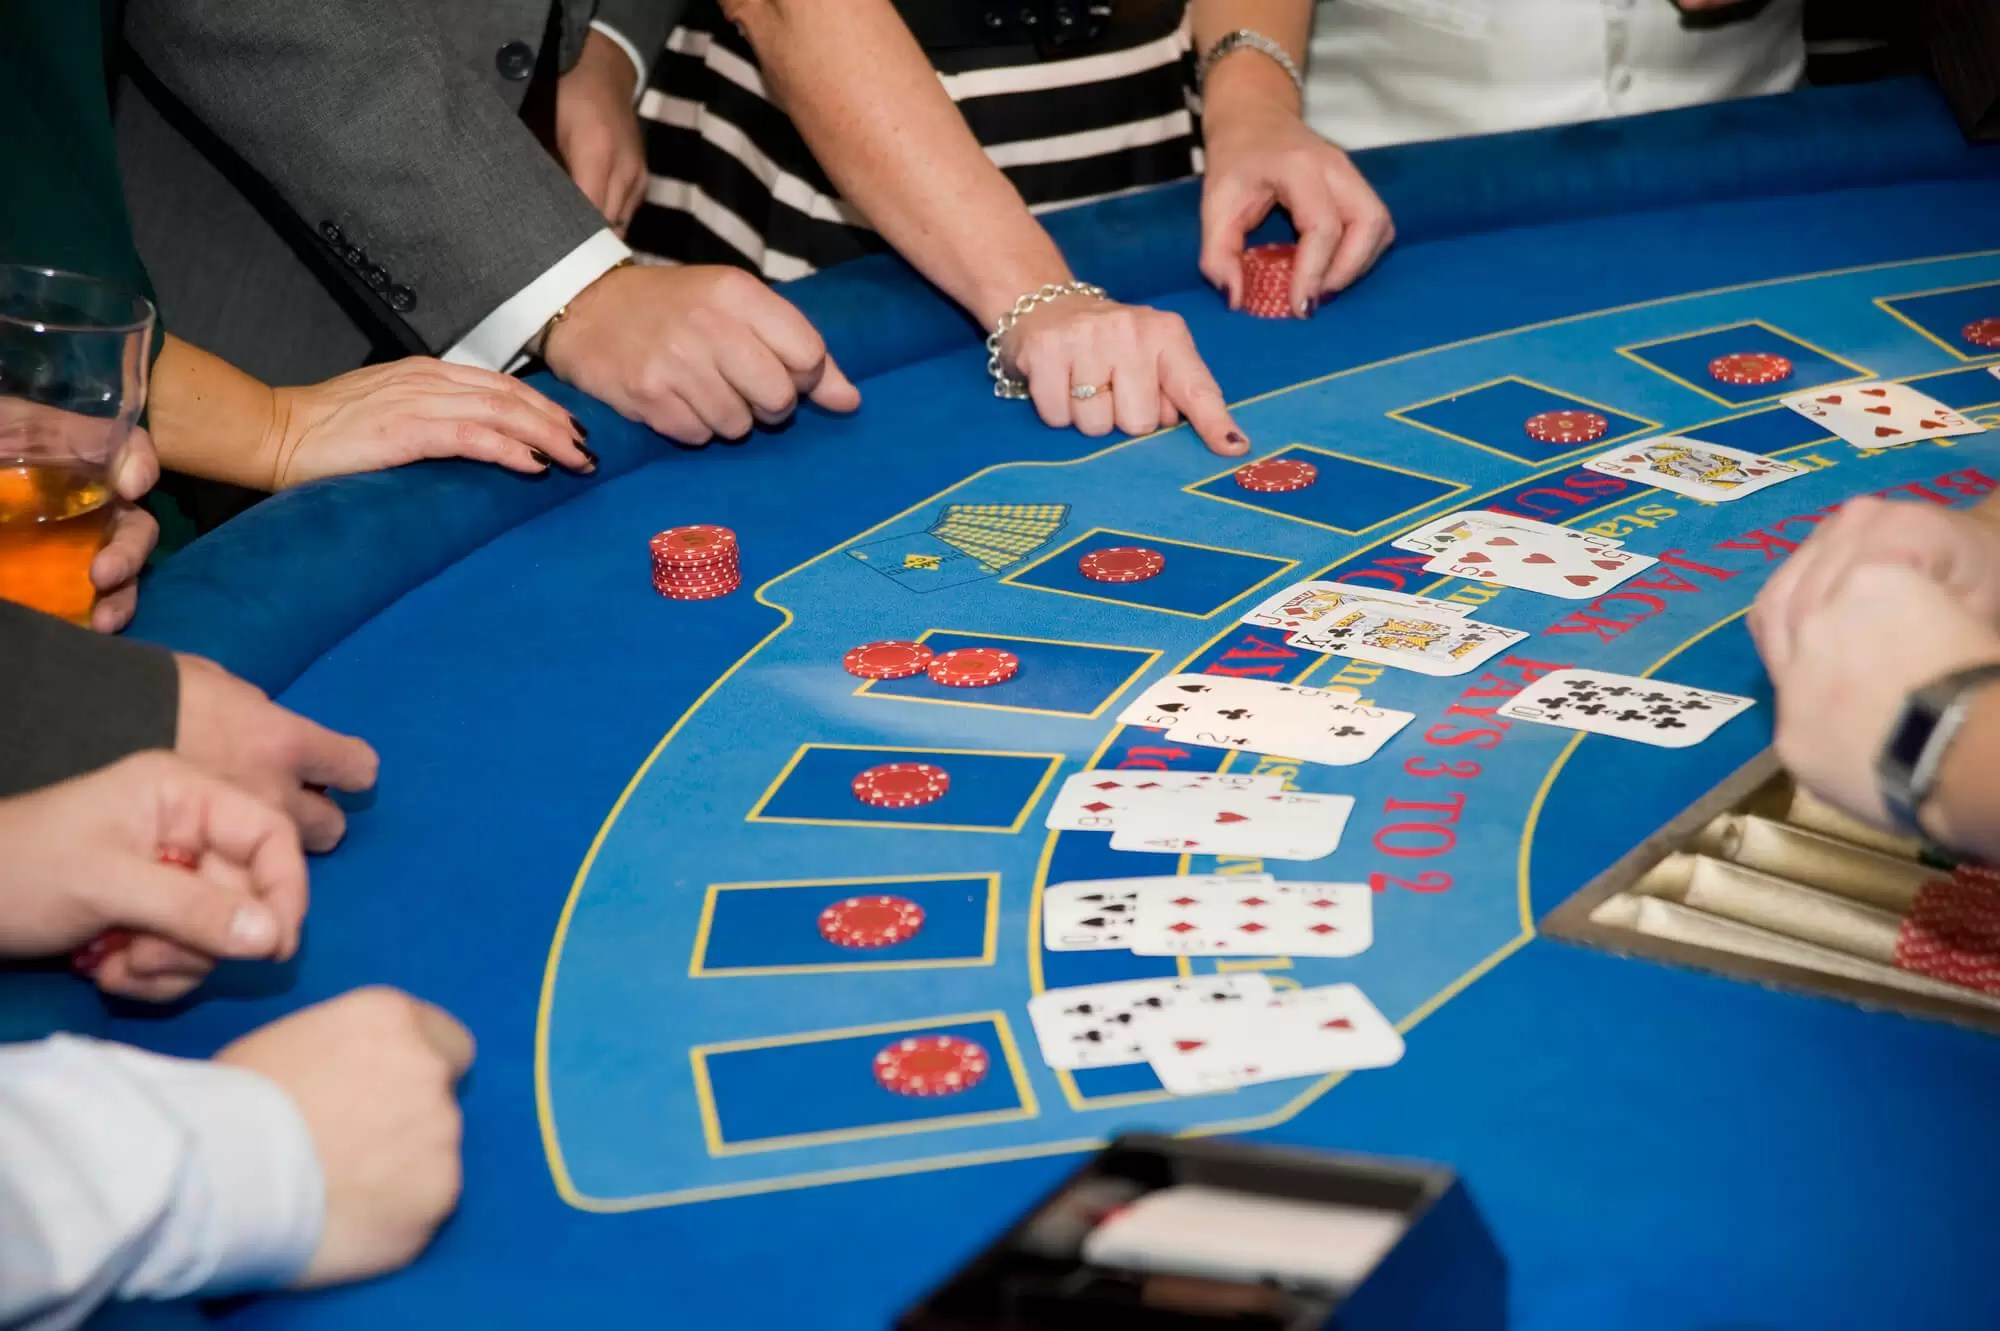 Treatment For Problem Gamblers Charged With a Crime, Instead of Jail or Prison